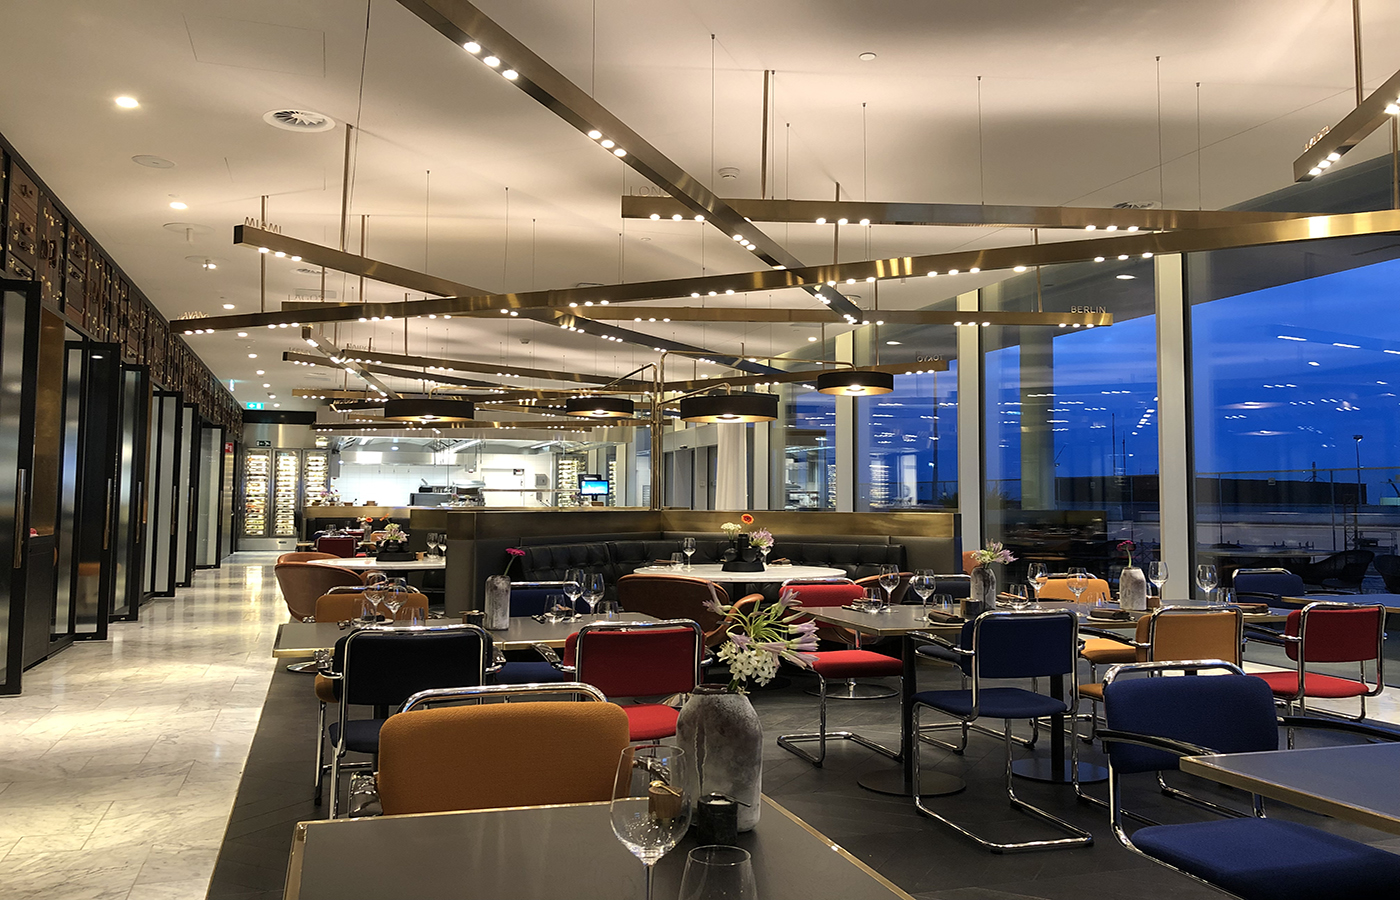 KLM Crown Lounge Restaurant Blue